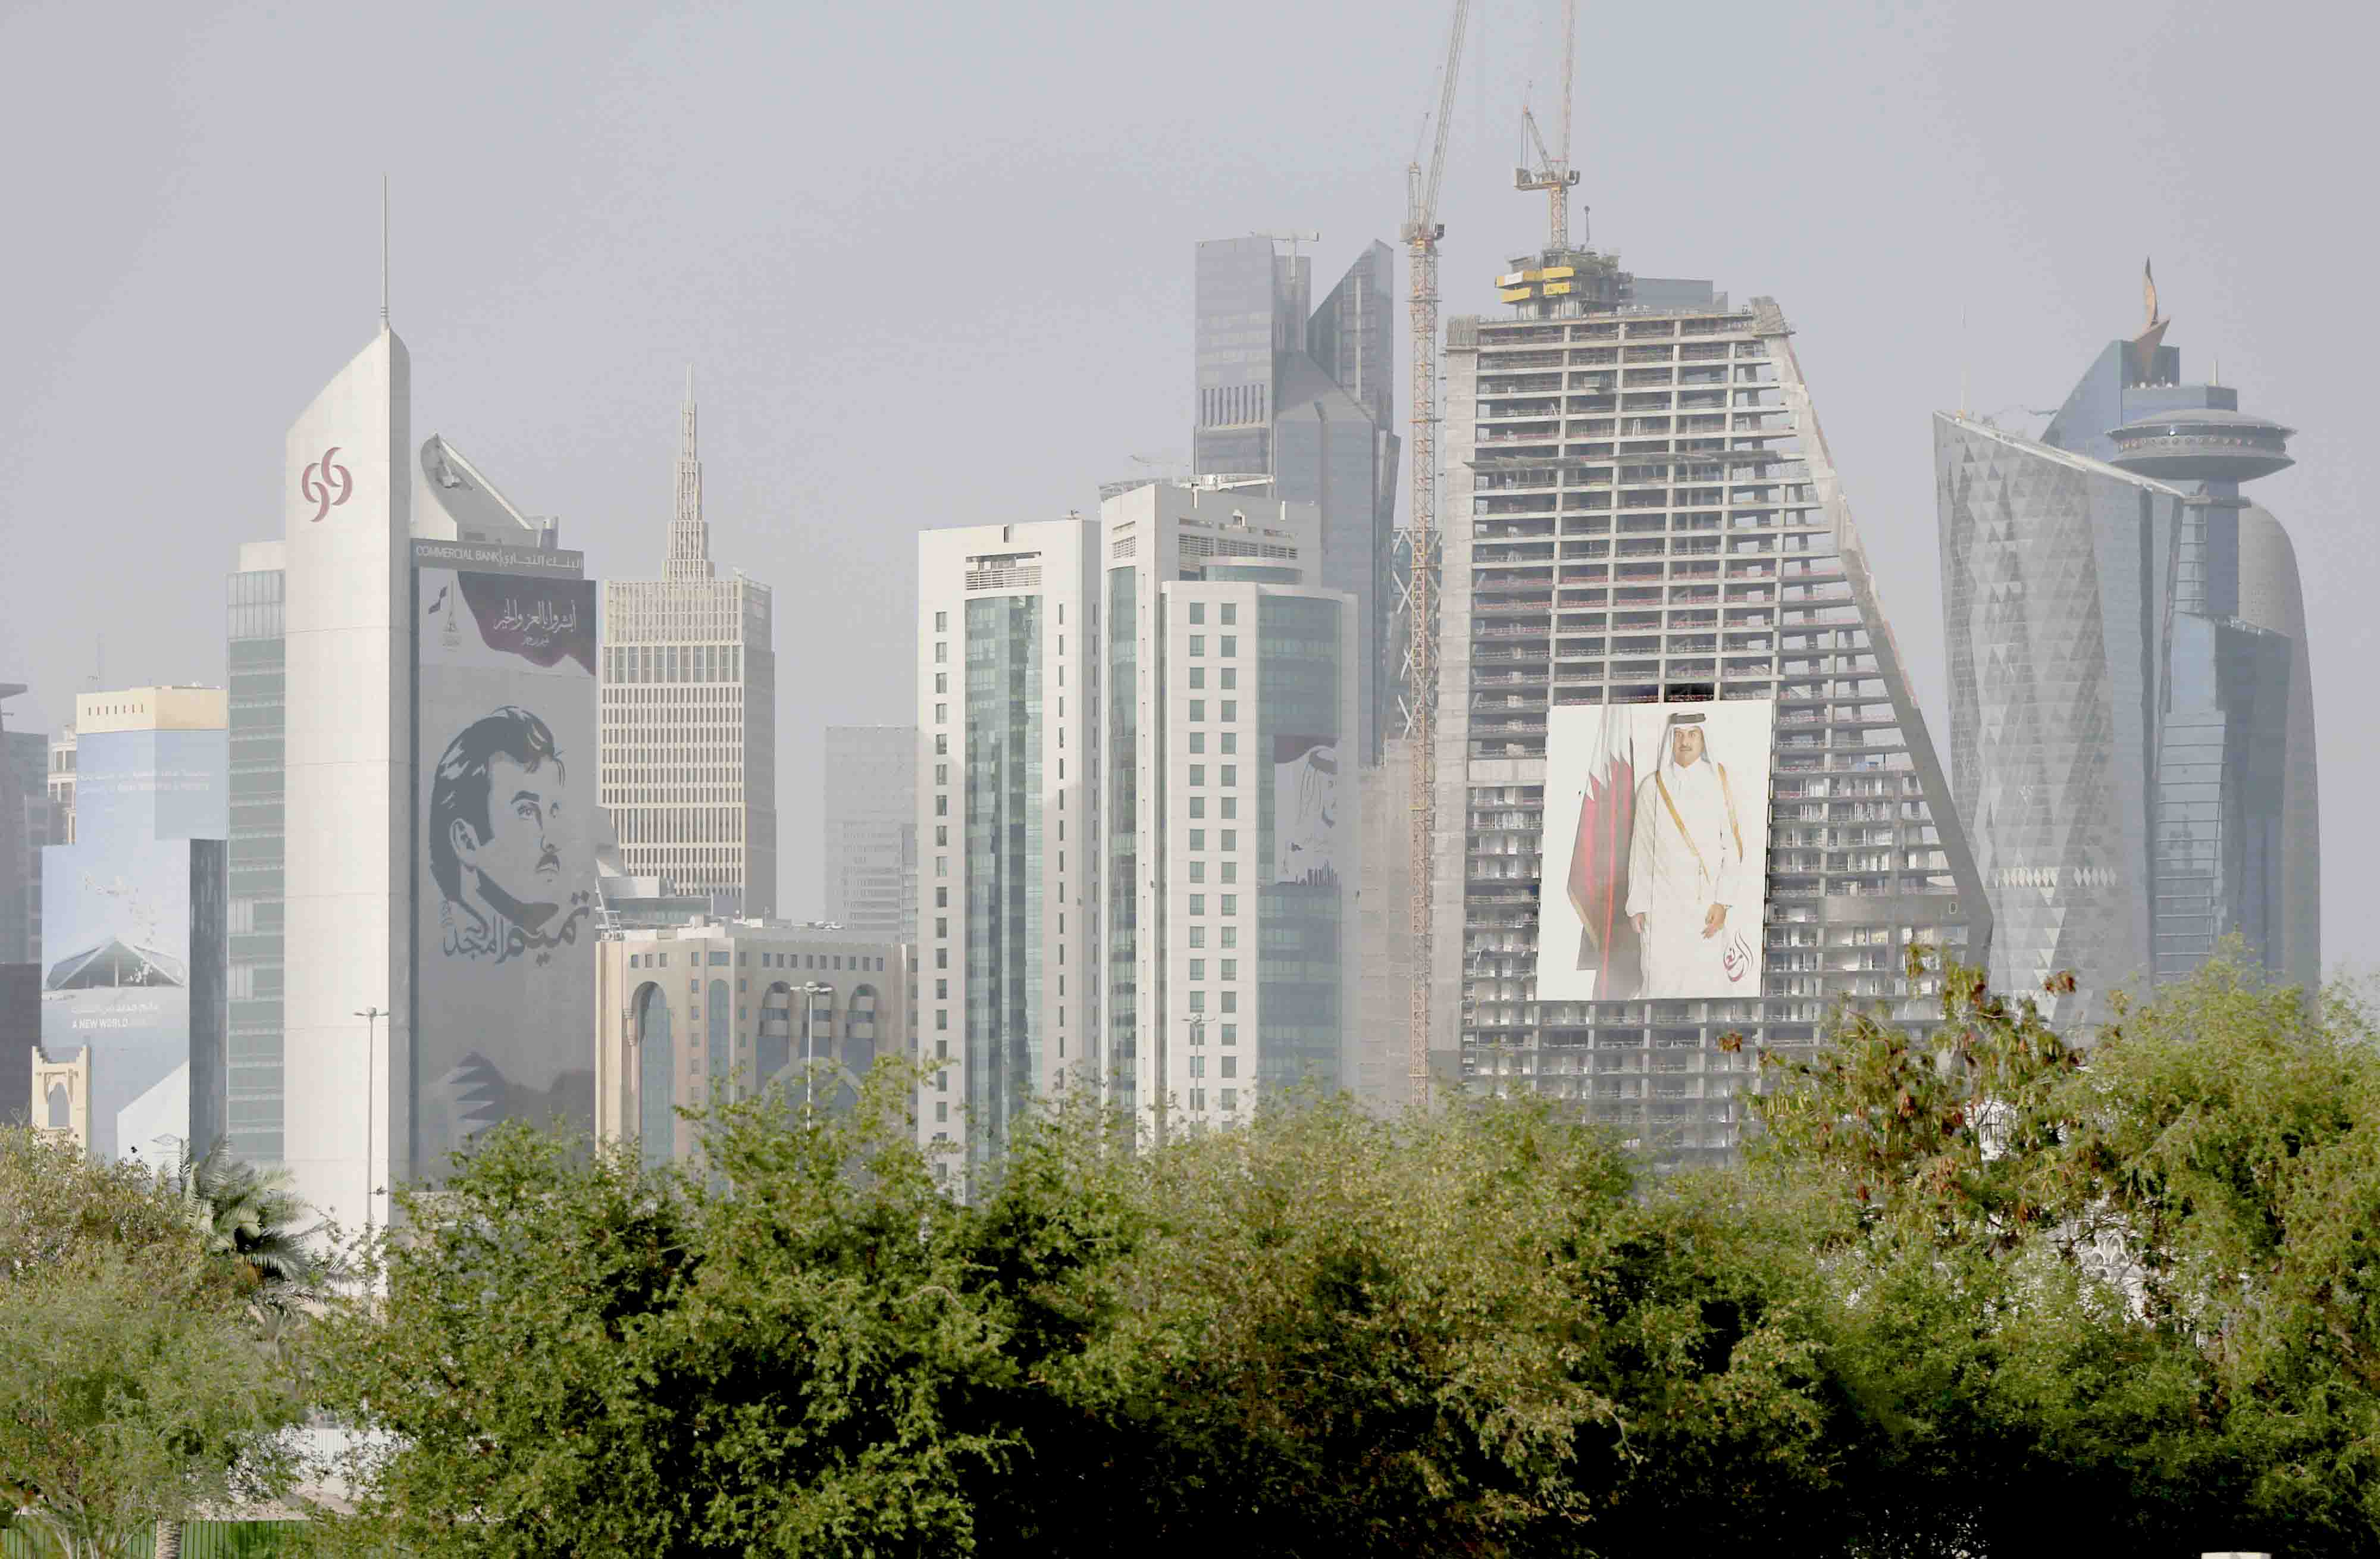 Wherever you turn your eye. Images of the Qatari Emir Sheikh Tamim bin Hamad al-Thani hang on towers in Doha.(AP)